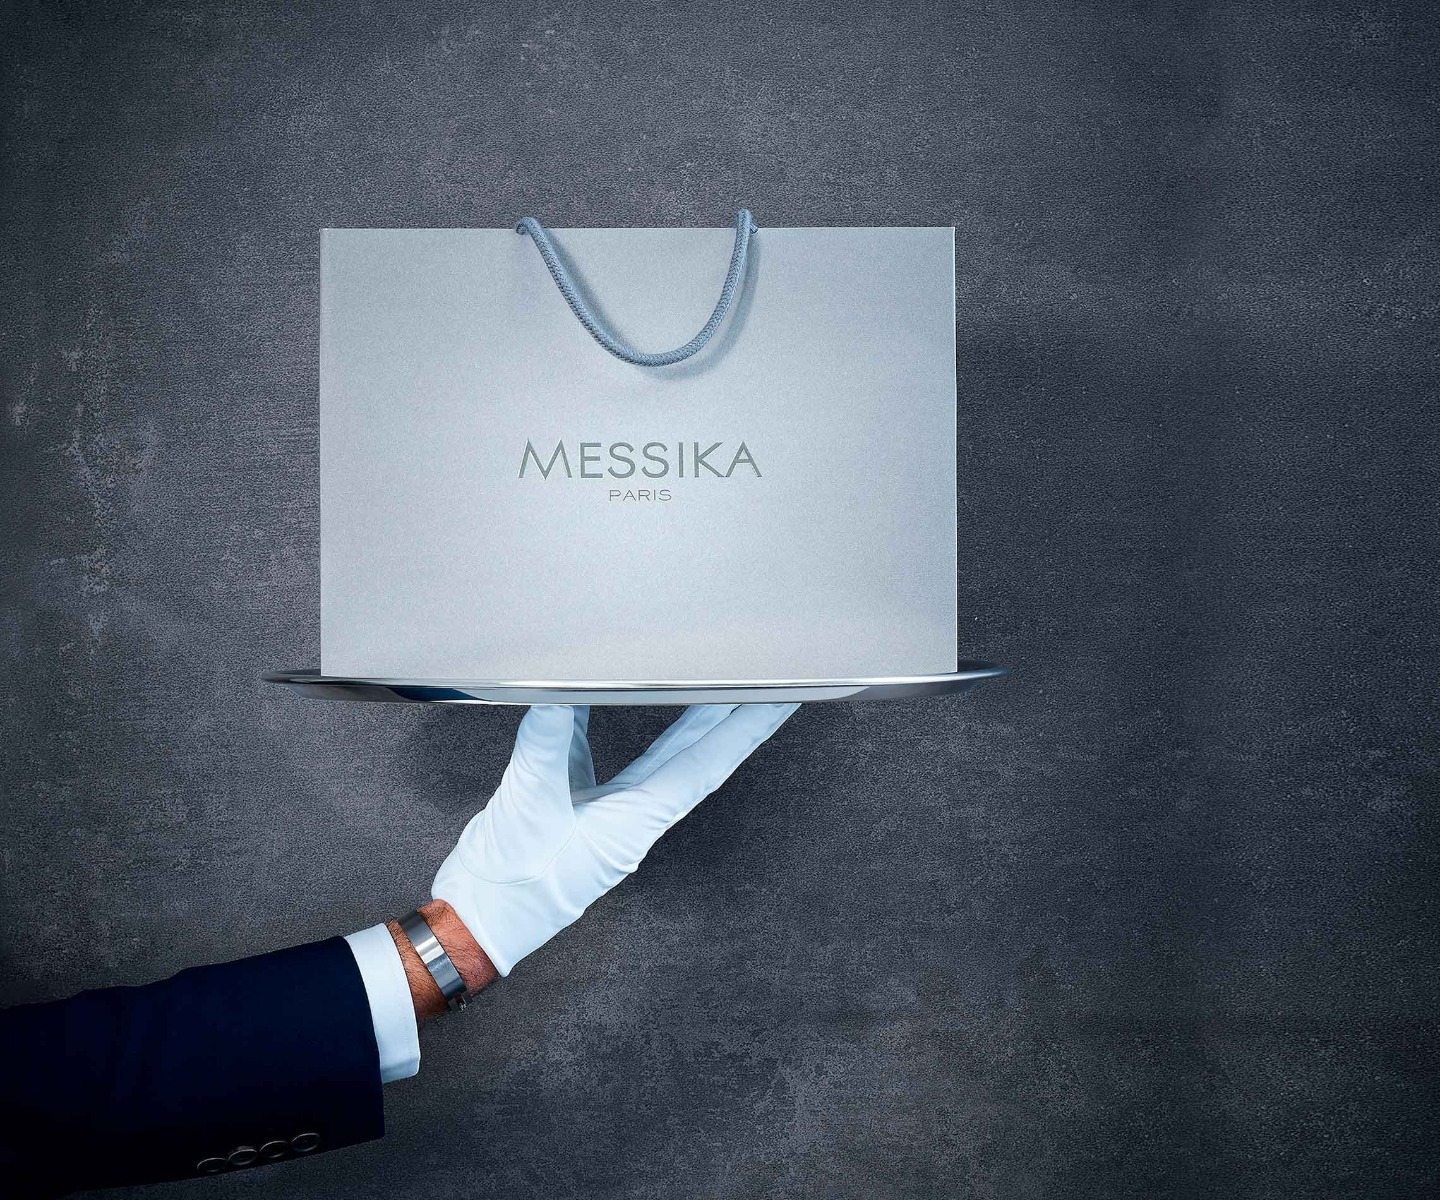 messika-art-of-giving